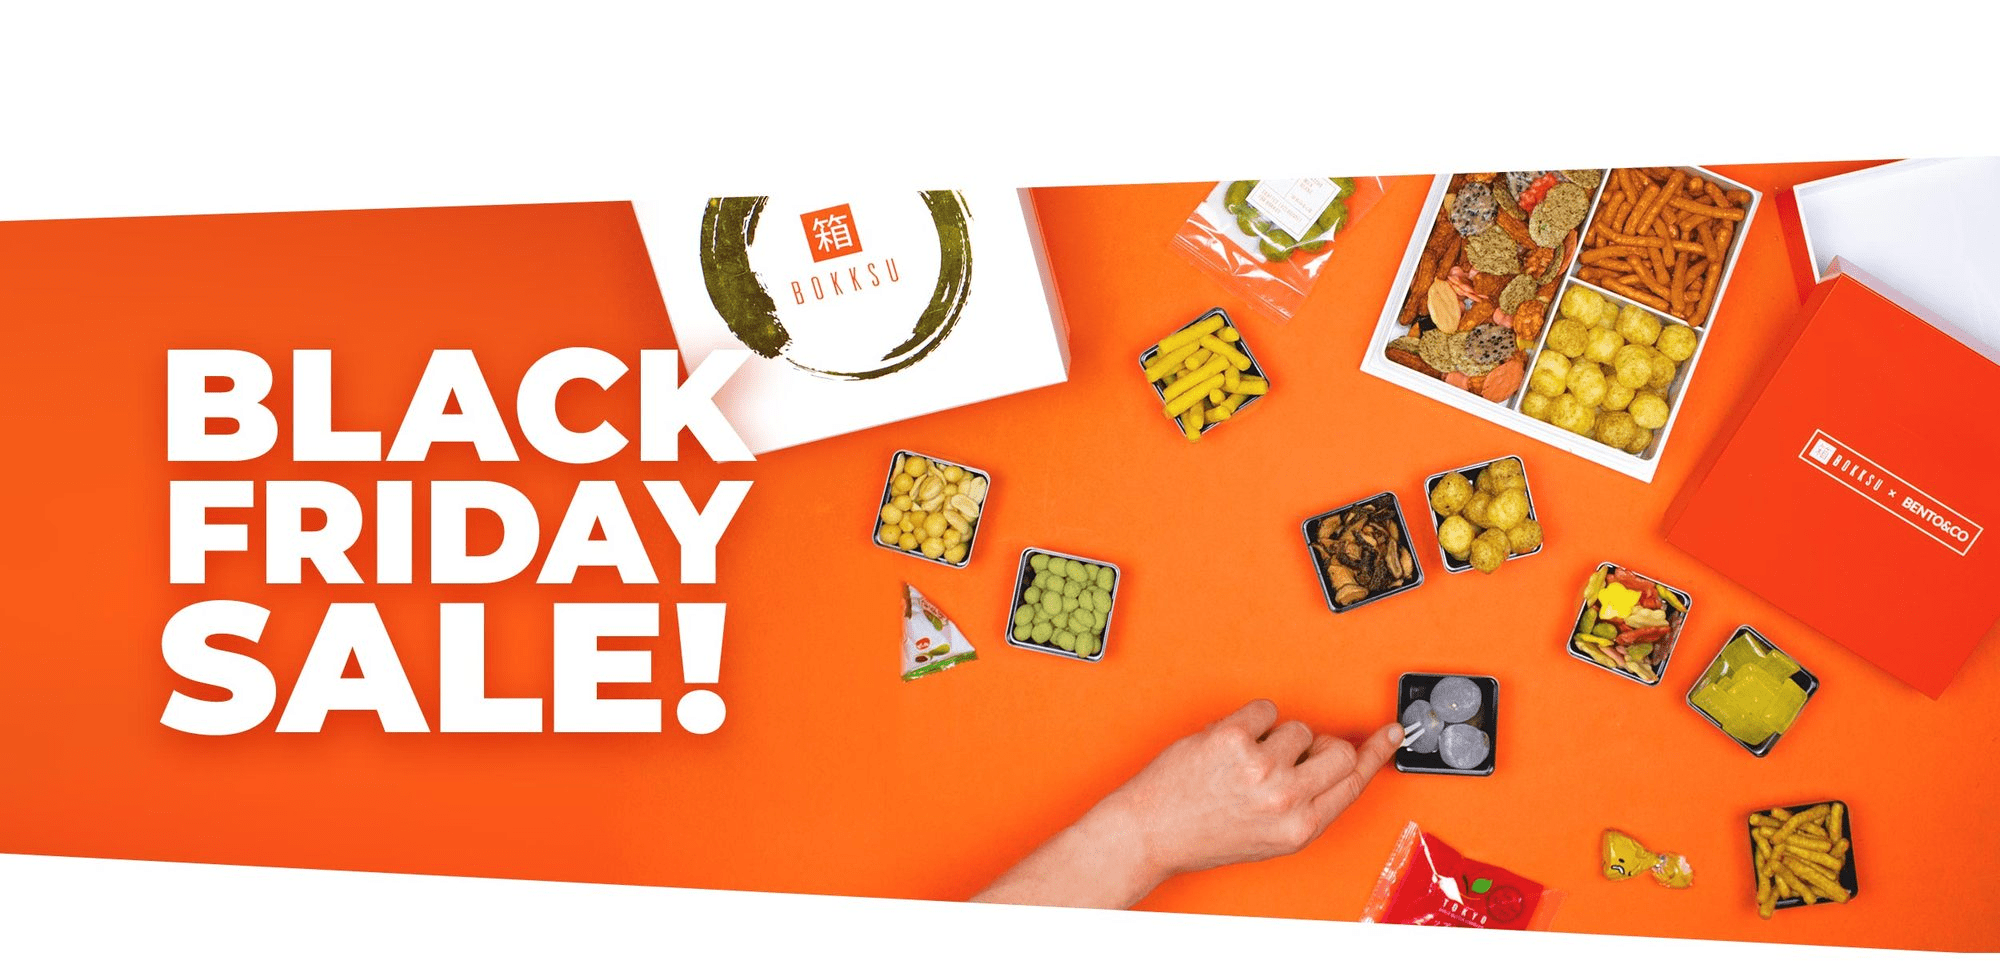 Bokksu Black Friday 2018 Deal: get a FREE limited edition Box with 12-month subscription!